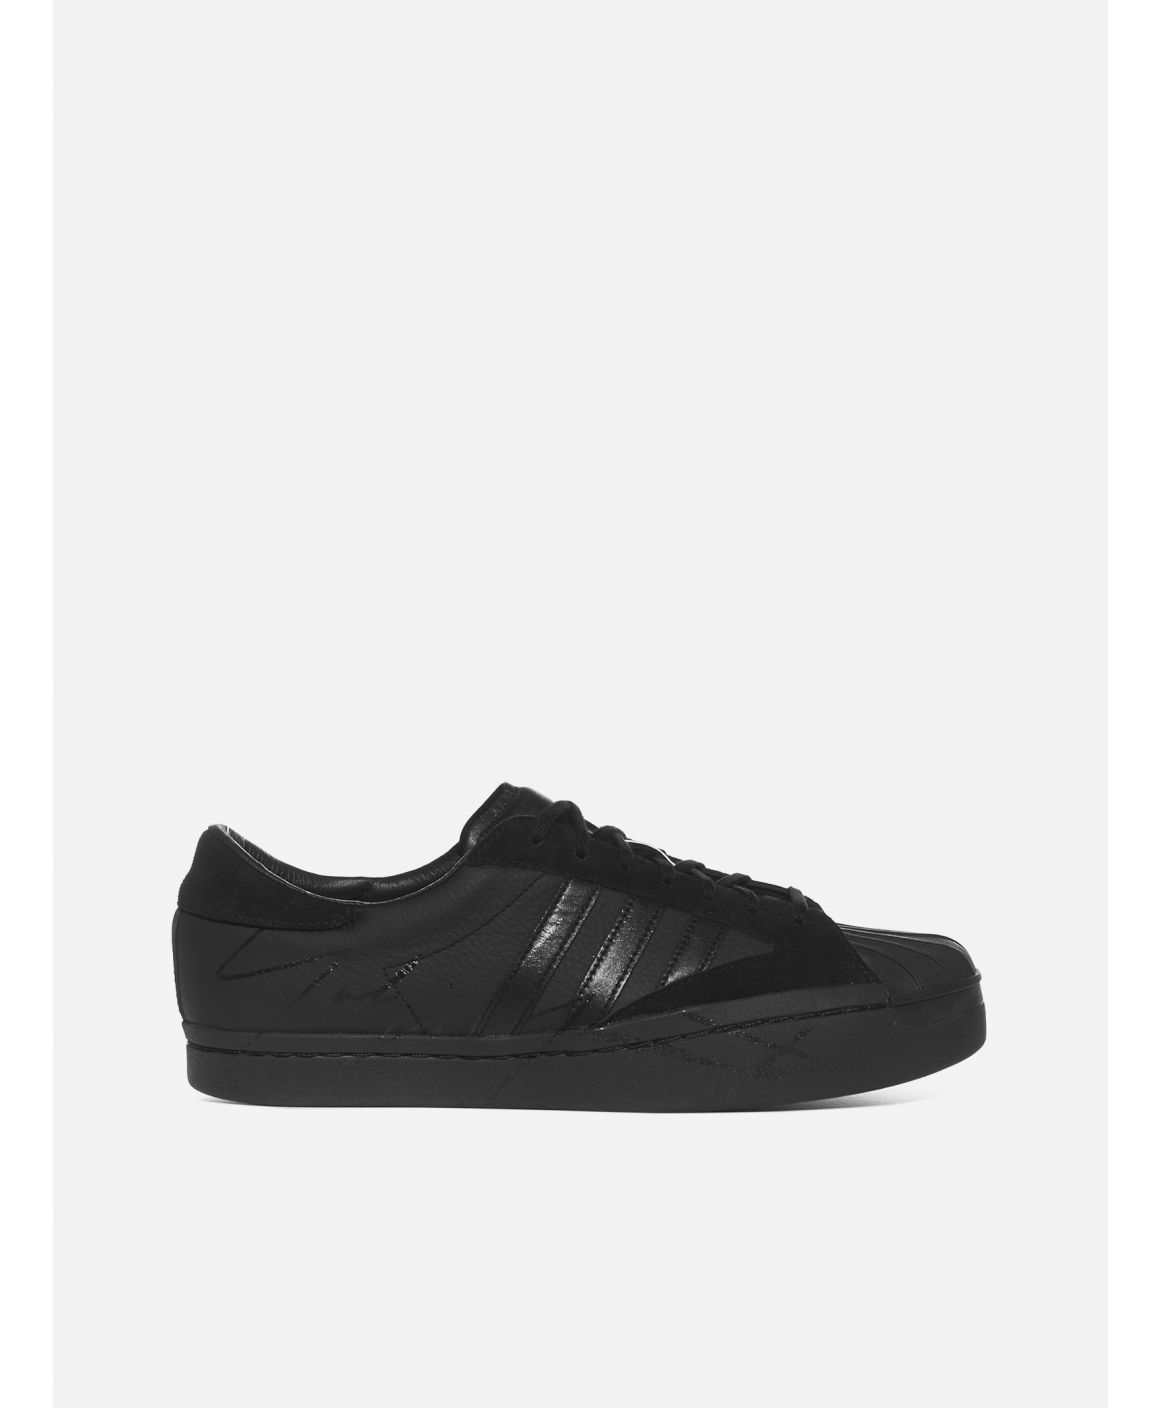 Yohji Star x Adidas leather and suede sneakers